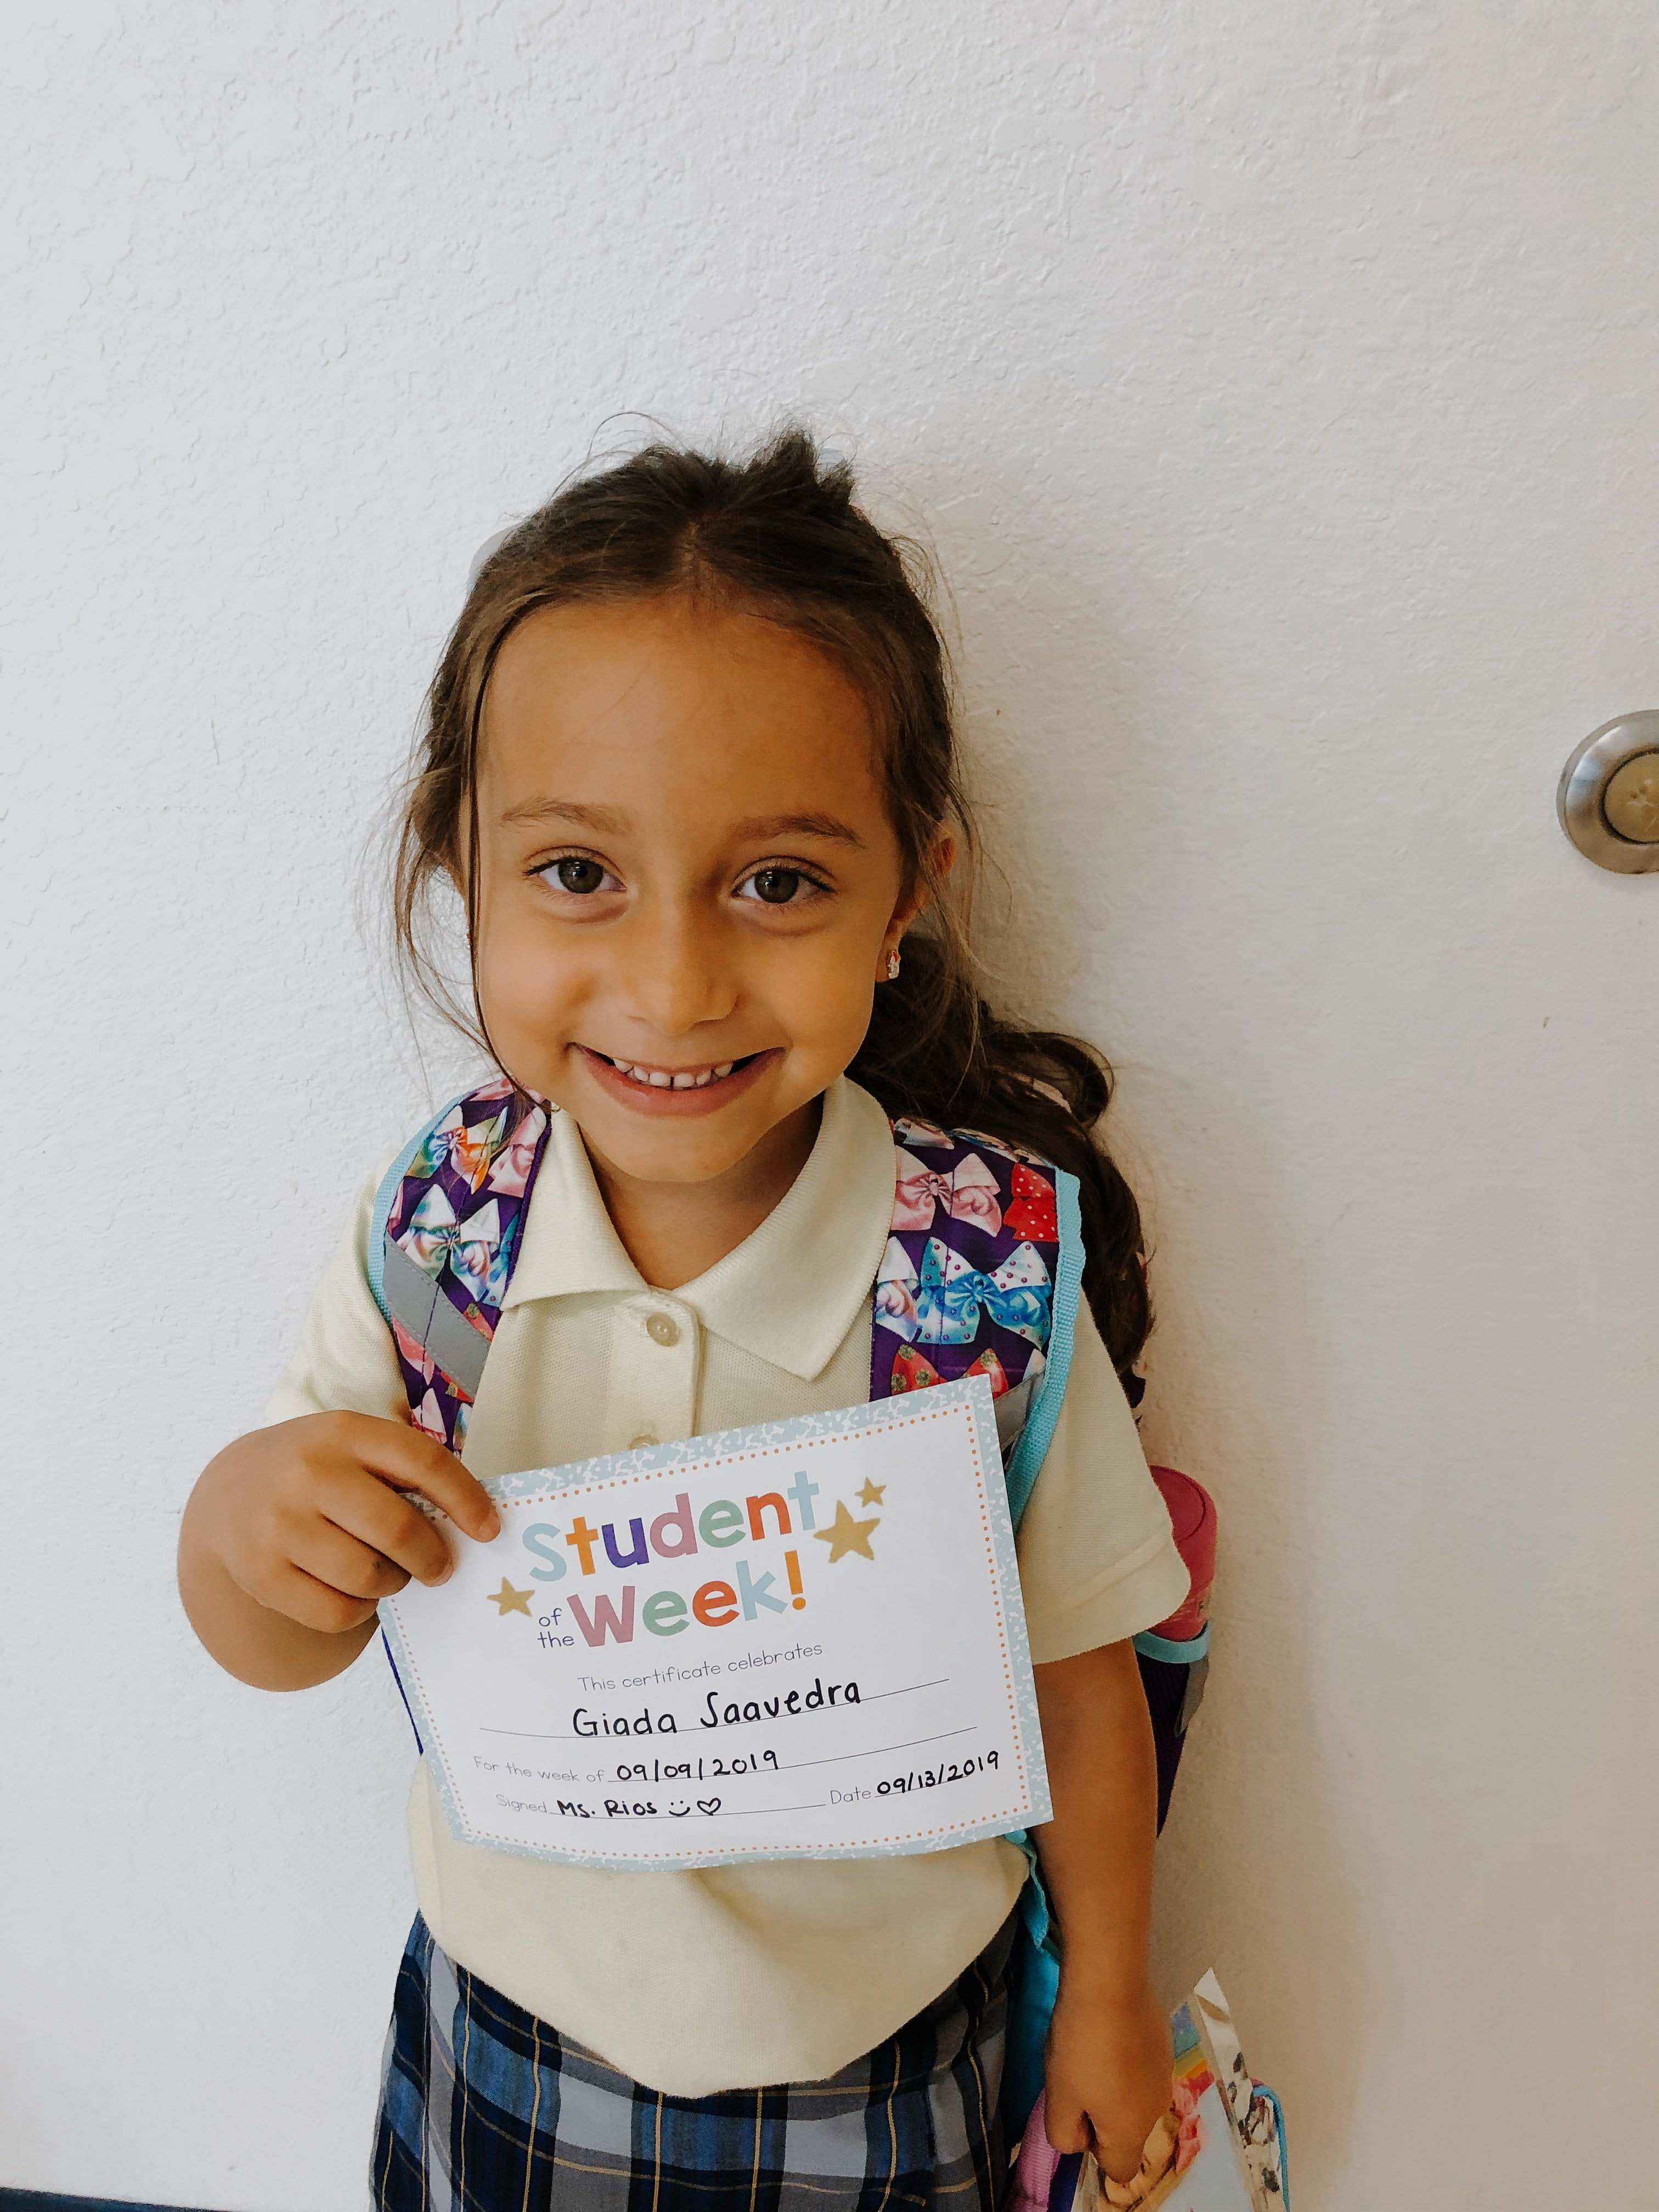 STUDENT OF THE WEEK! Image number 2